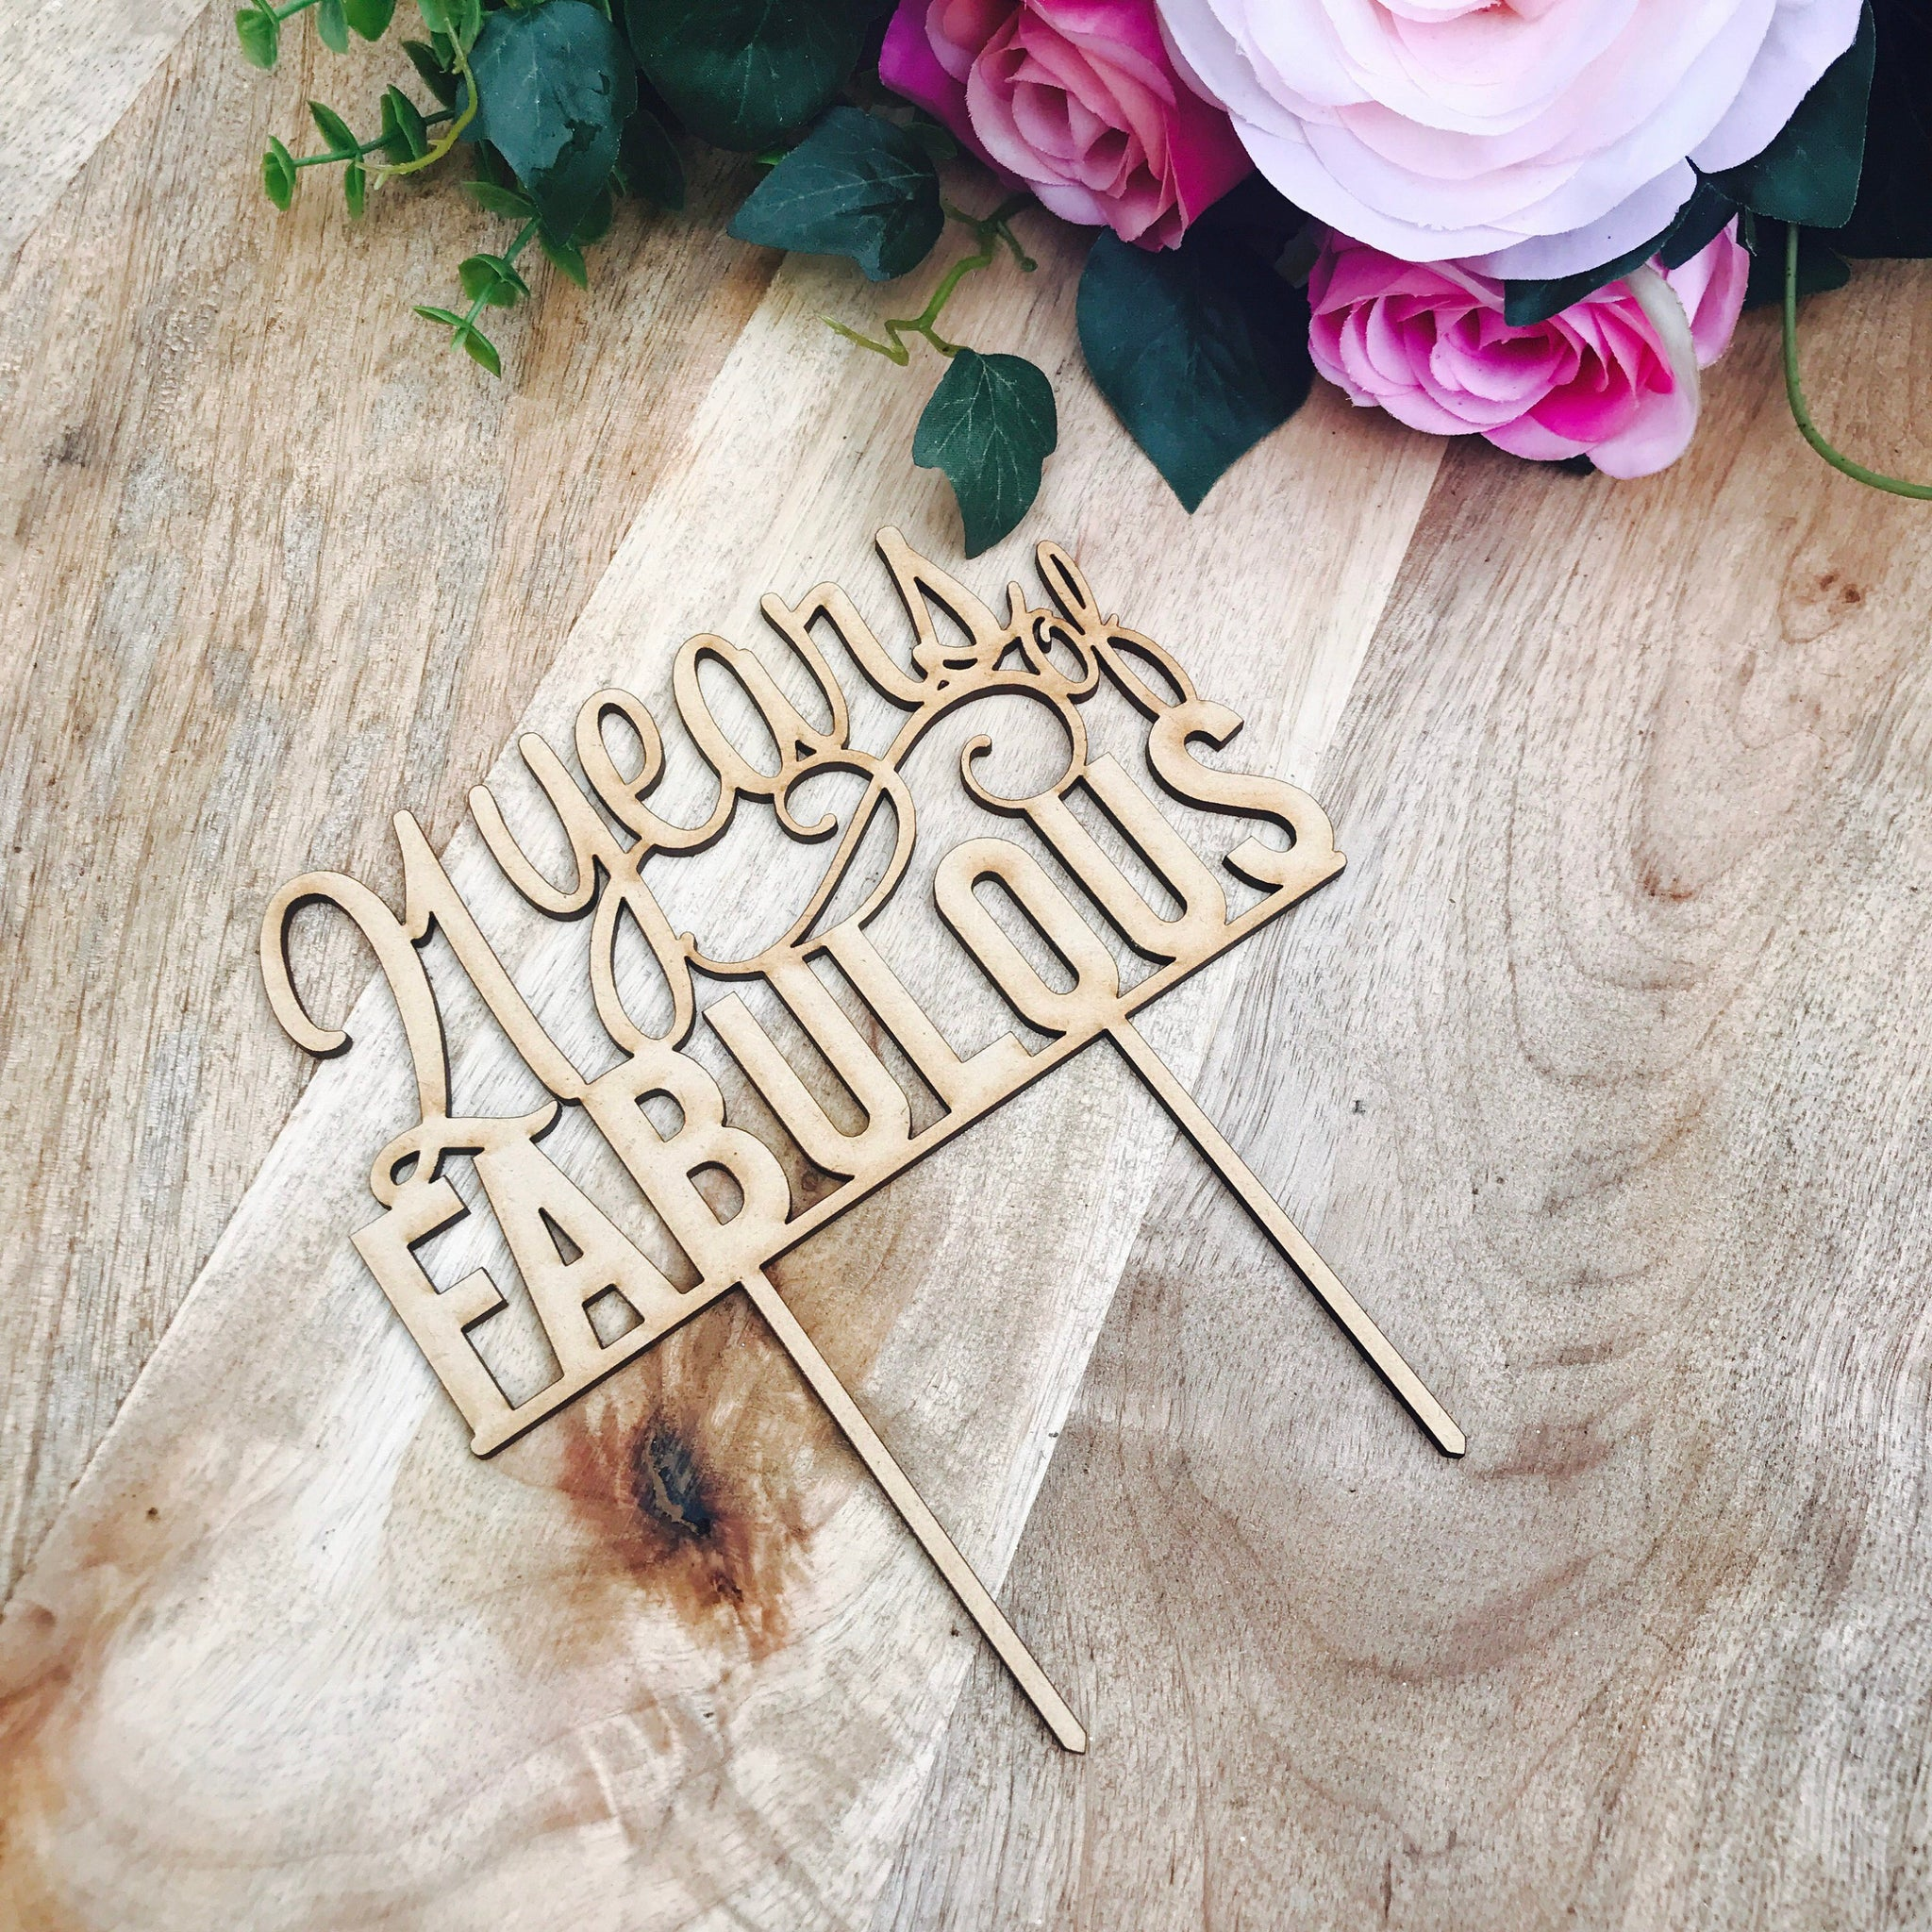 Clearance 1 Only Timber 21 Years Of Fabulous Cake Topper 21st